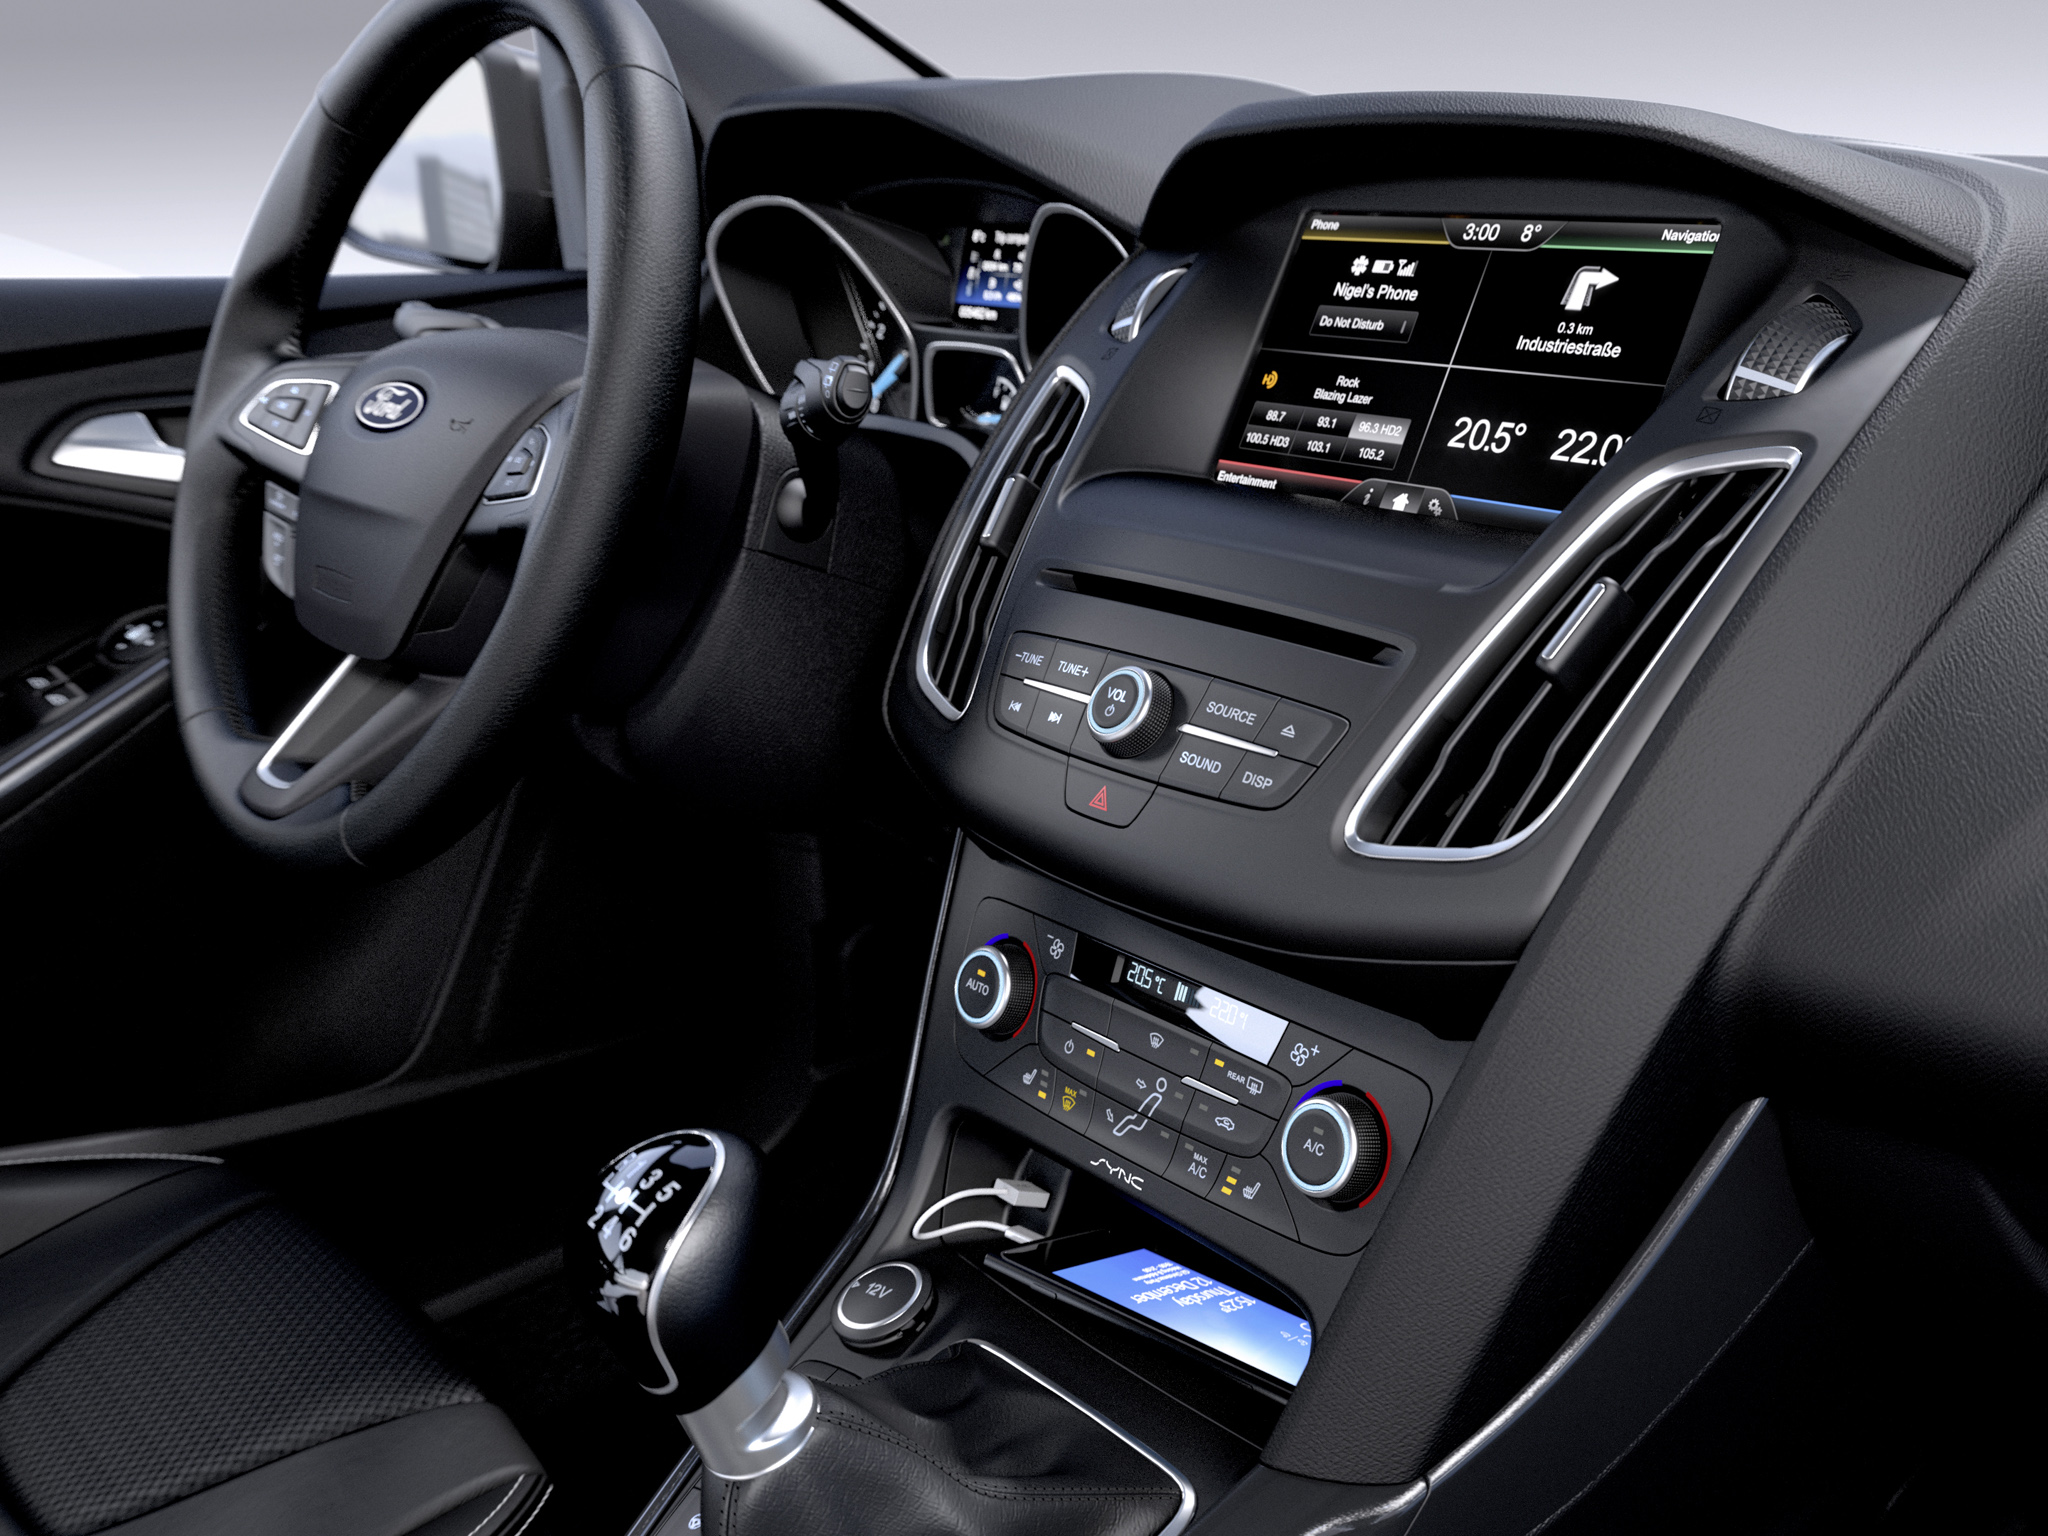 2014 ford focus estate touring leaked photos show new interior and redesigned grille autoevolution - Ford Focus 2014